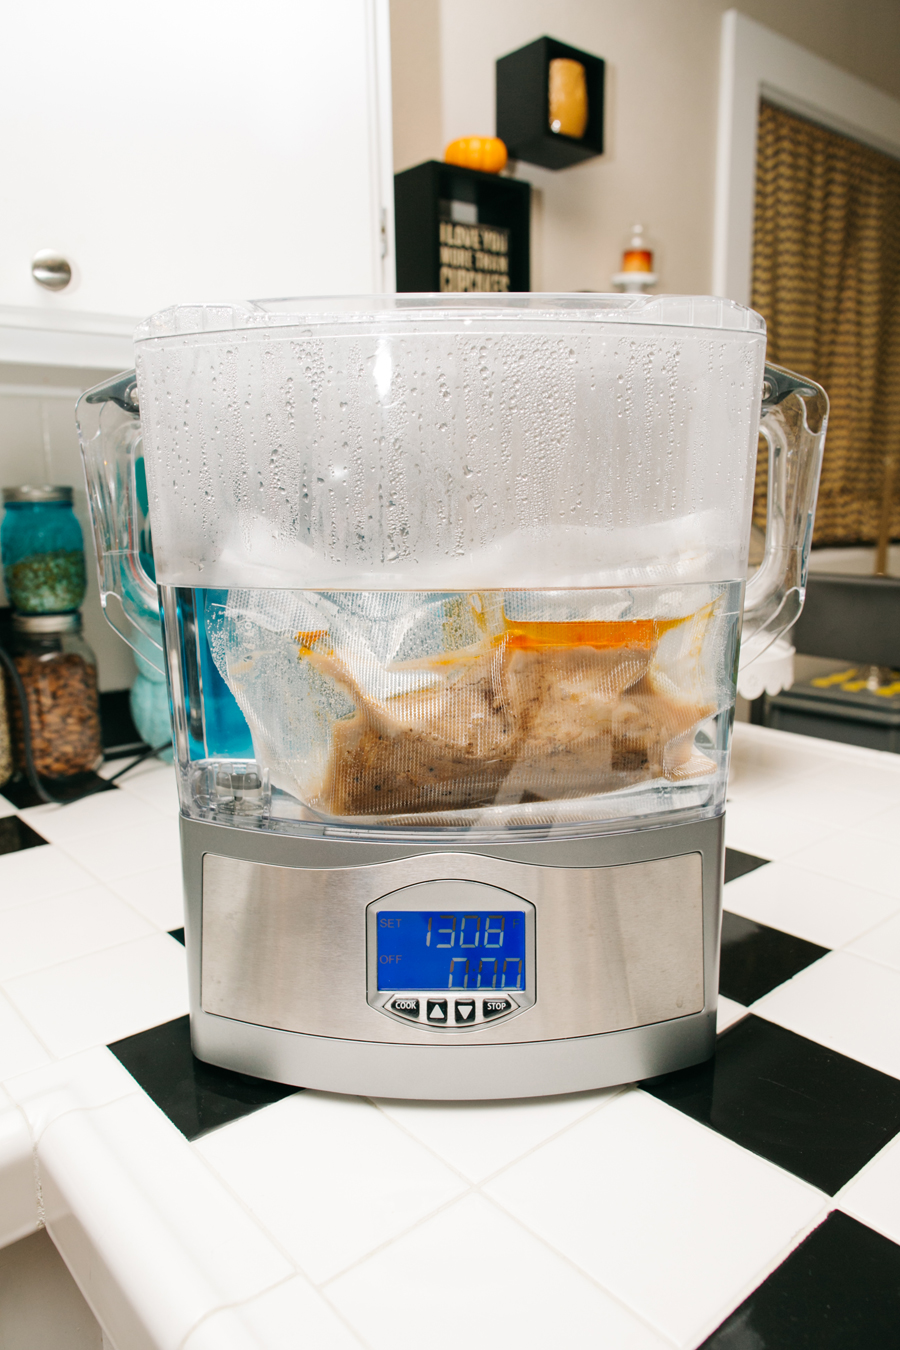 001-philly-cheesesteaks-sous-vide-sousvant-cooking-katheryn-moran-photography.jpg